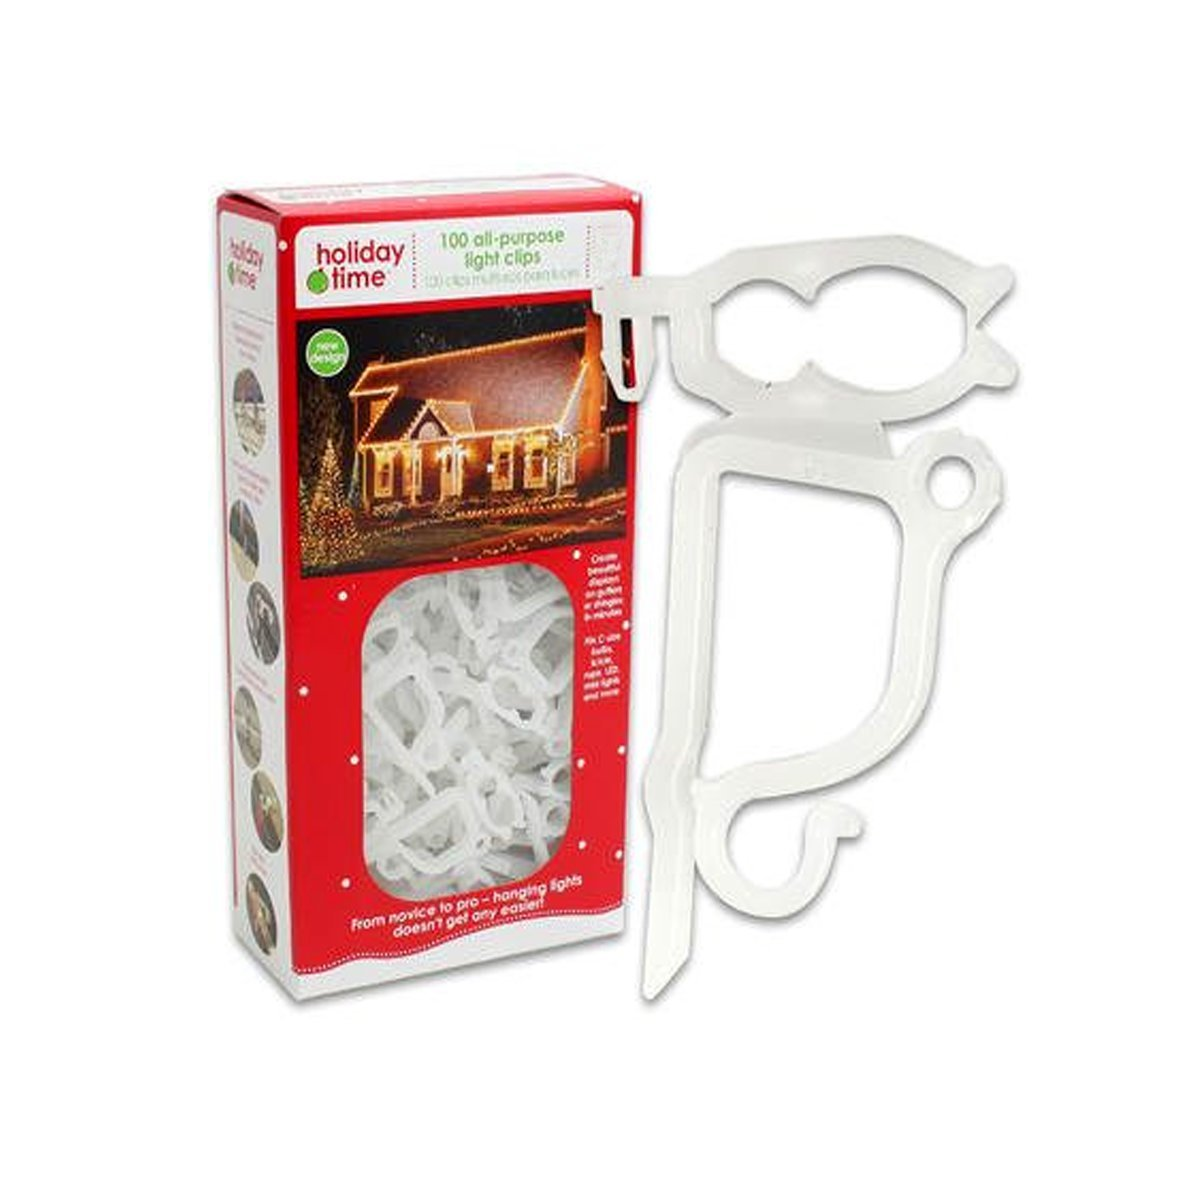 Made in USA Holiday Time 100 All-Purpose Light Clips (4)